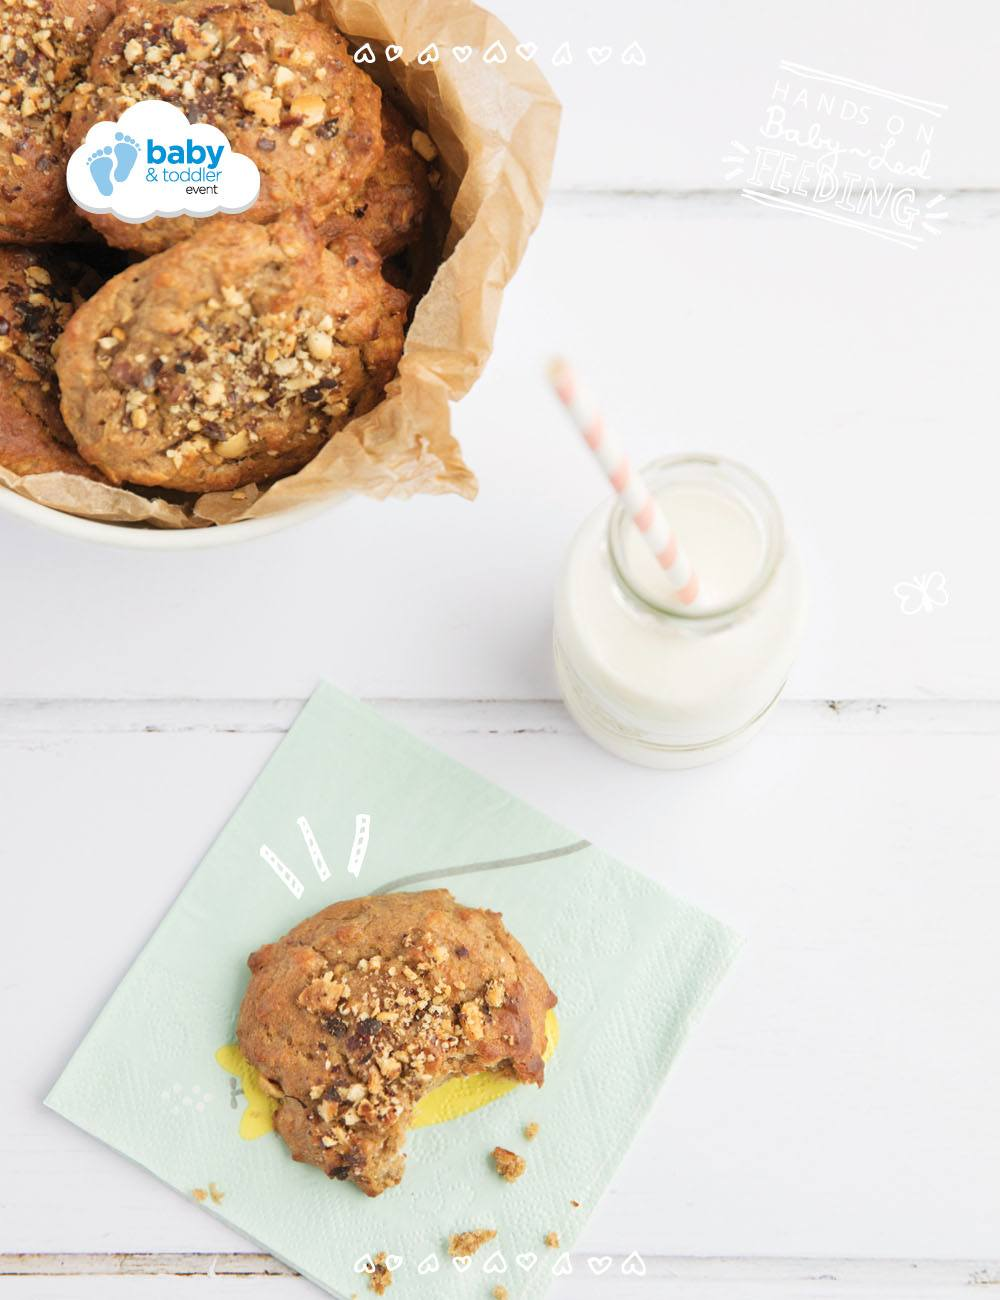 Baby-Led-Feeding-Healthy-Chickpea-Cookies-Recipe-Image-1